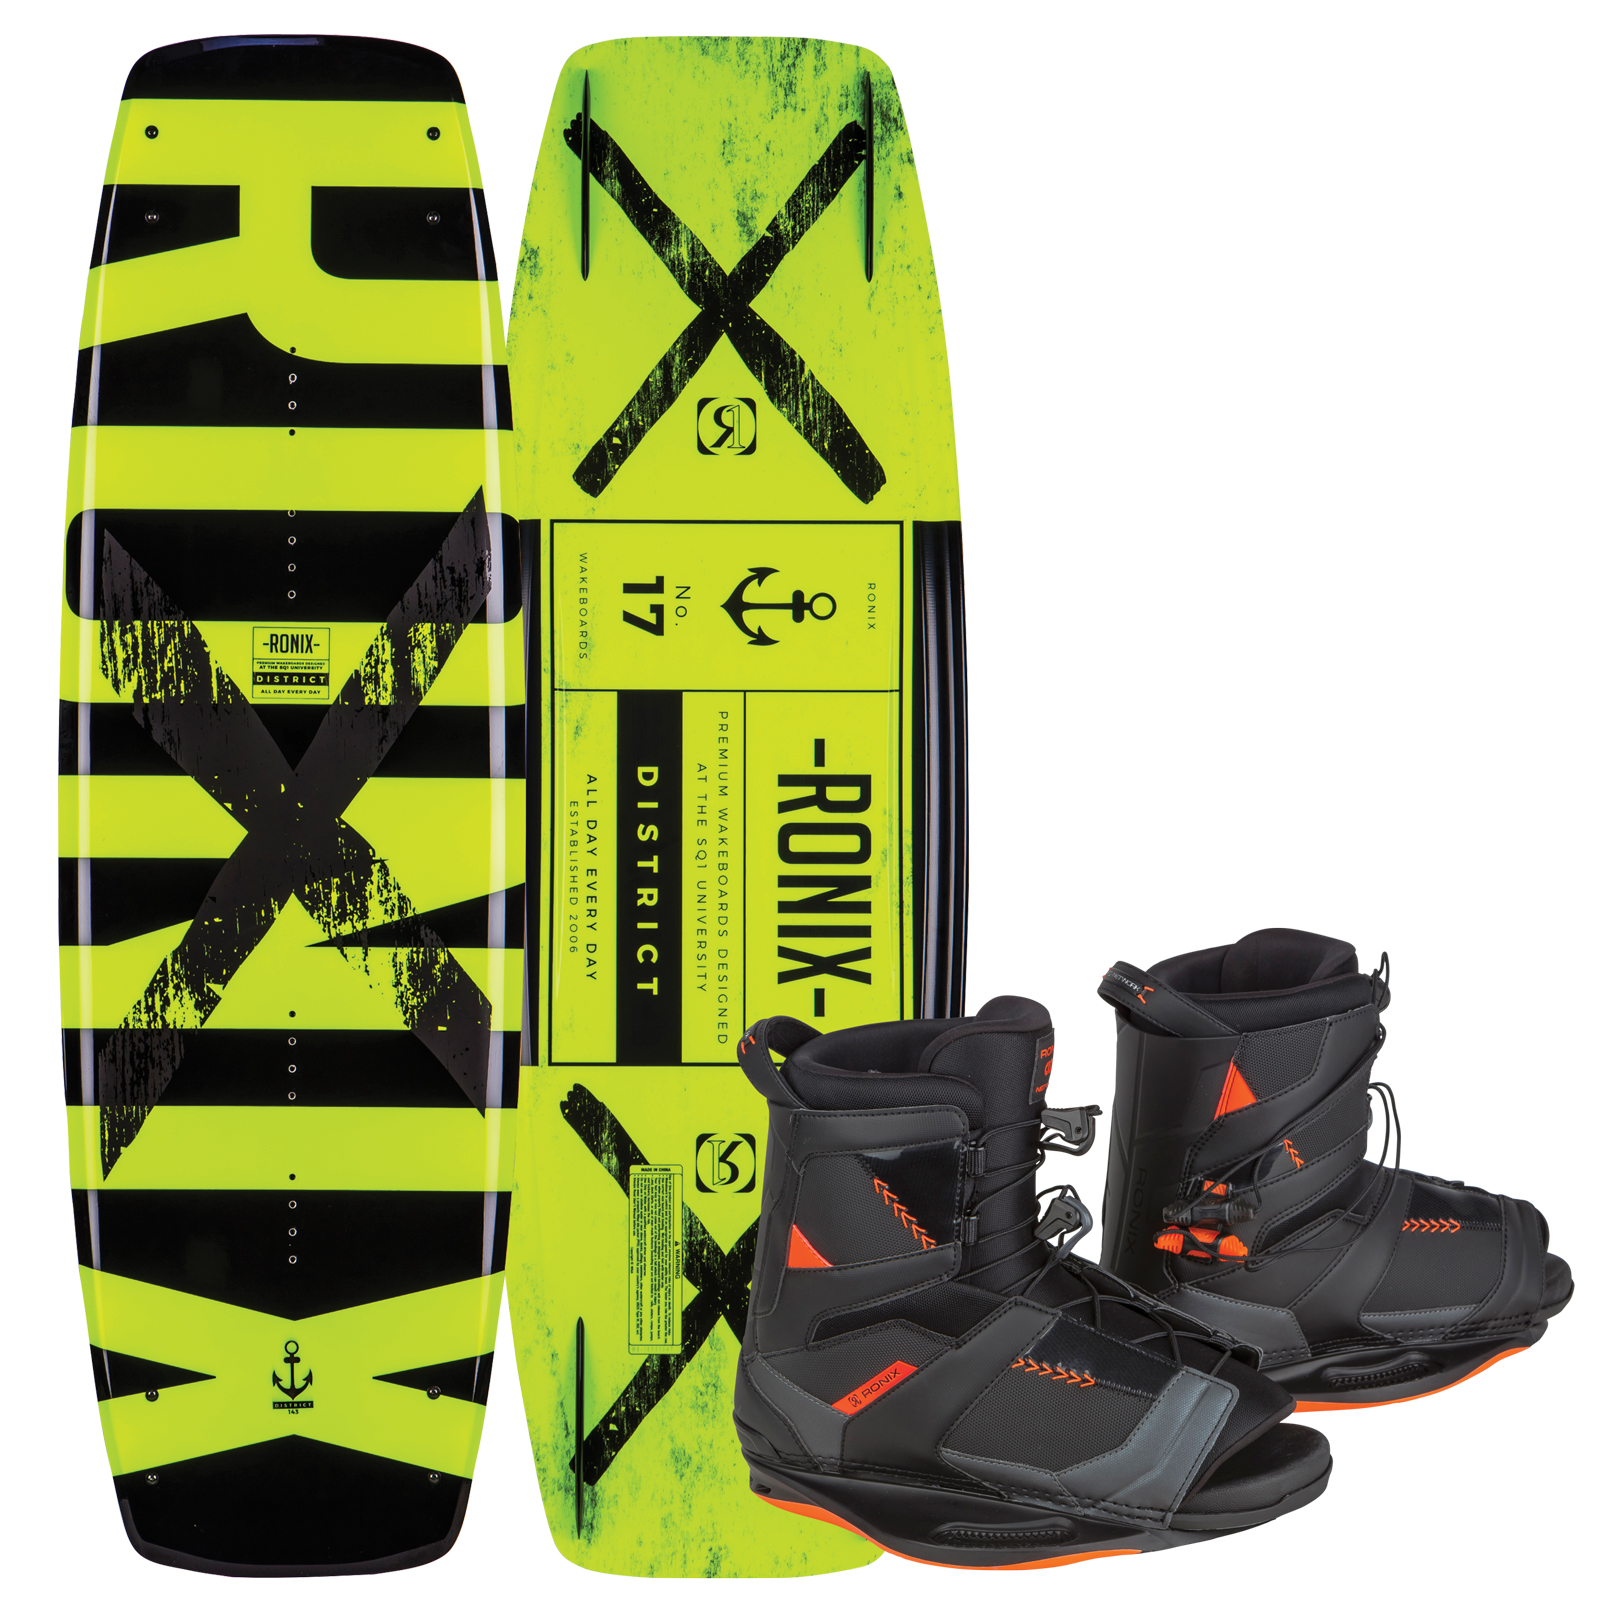 DISTRICT 134 W/ NETWORK PACKAGE RONIX 2017